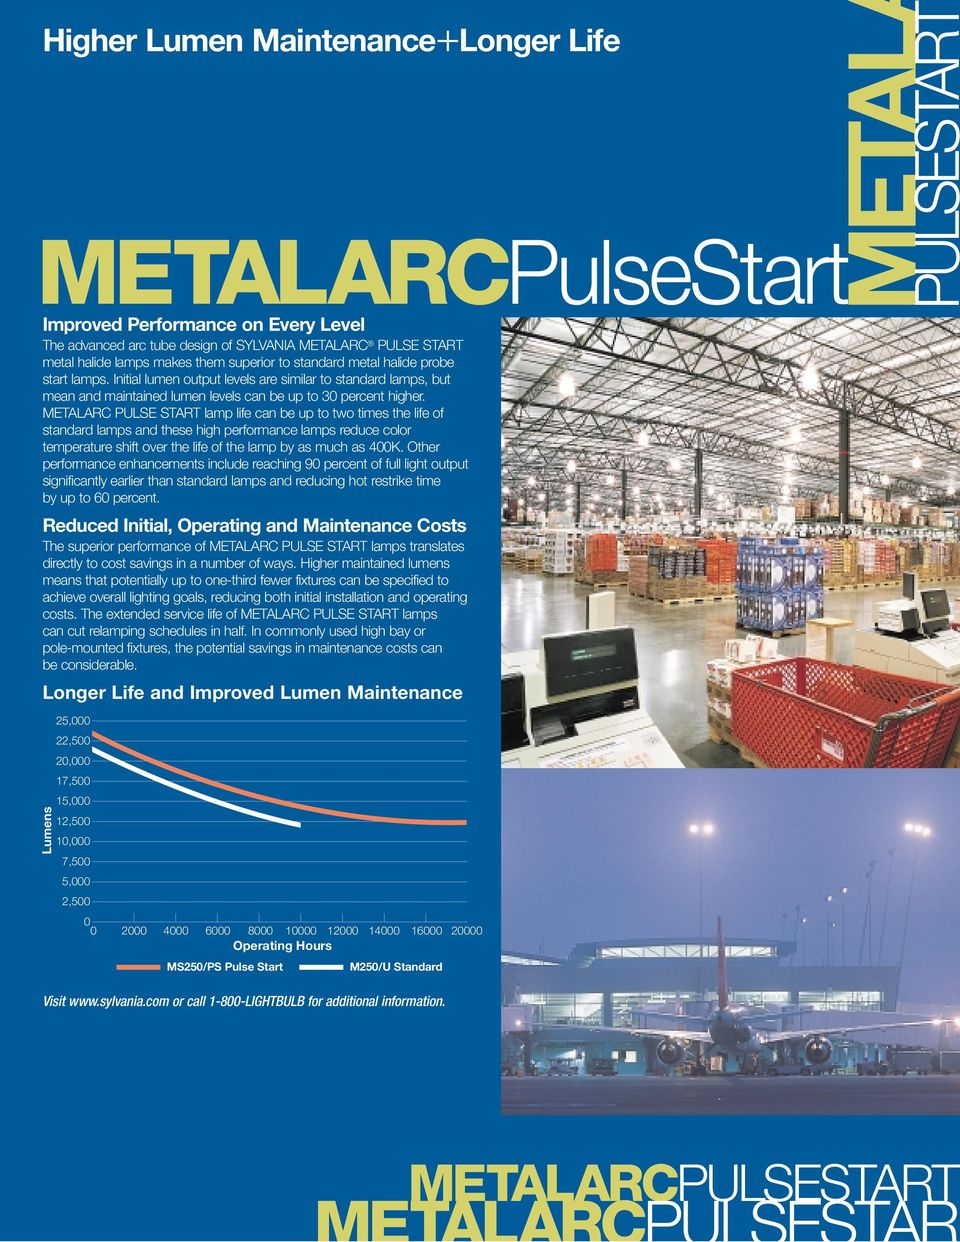 METALARC PULSE START lamp life can be up to two times the life of standard lamps and these high performance lamps reduce color temperature shift over the life of the lamp by as much as 400K.